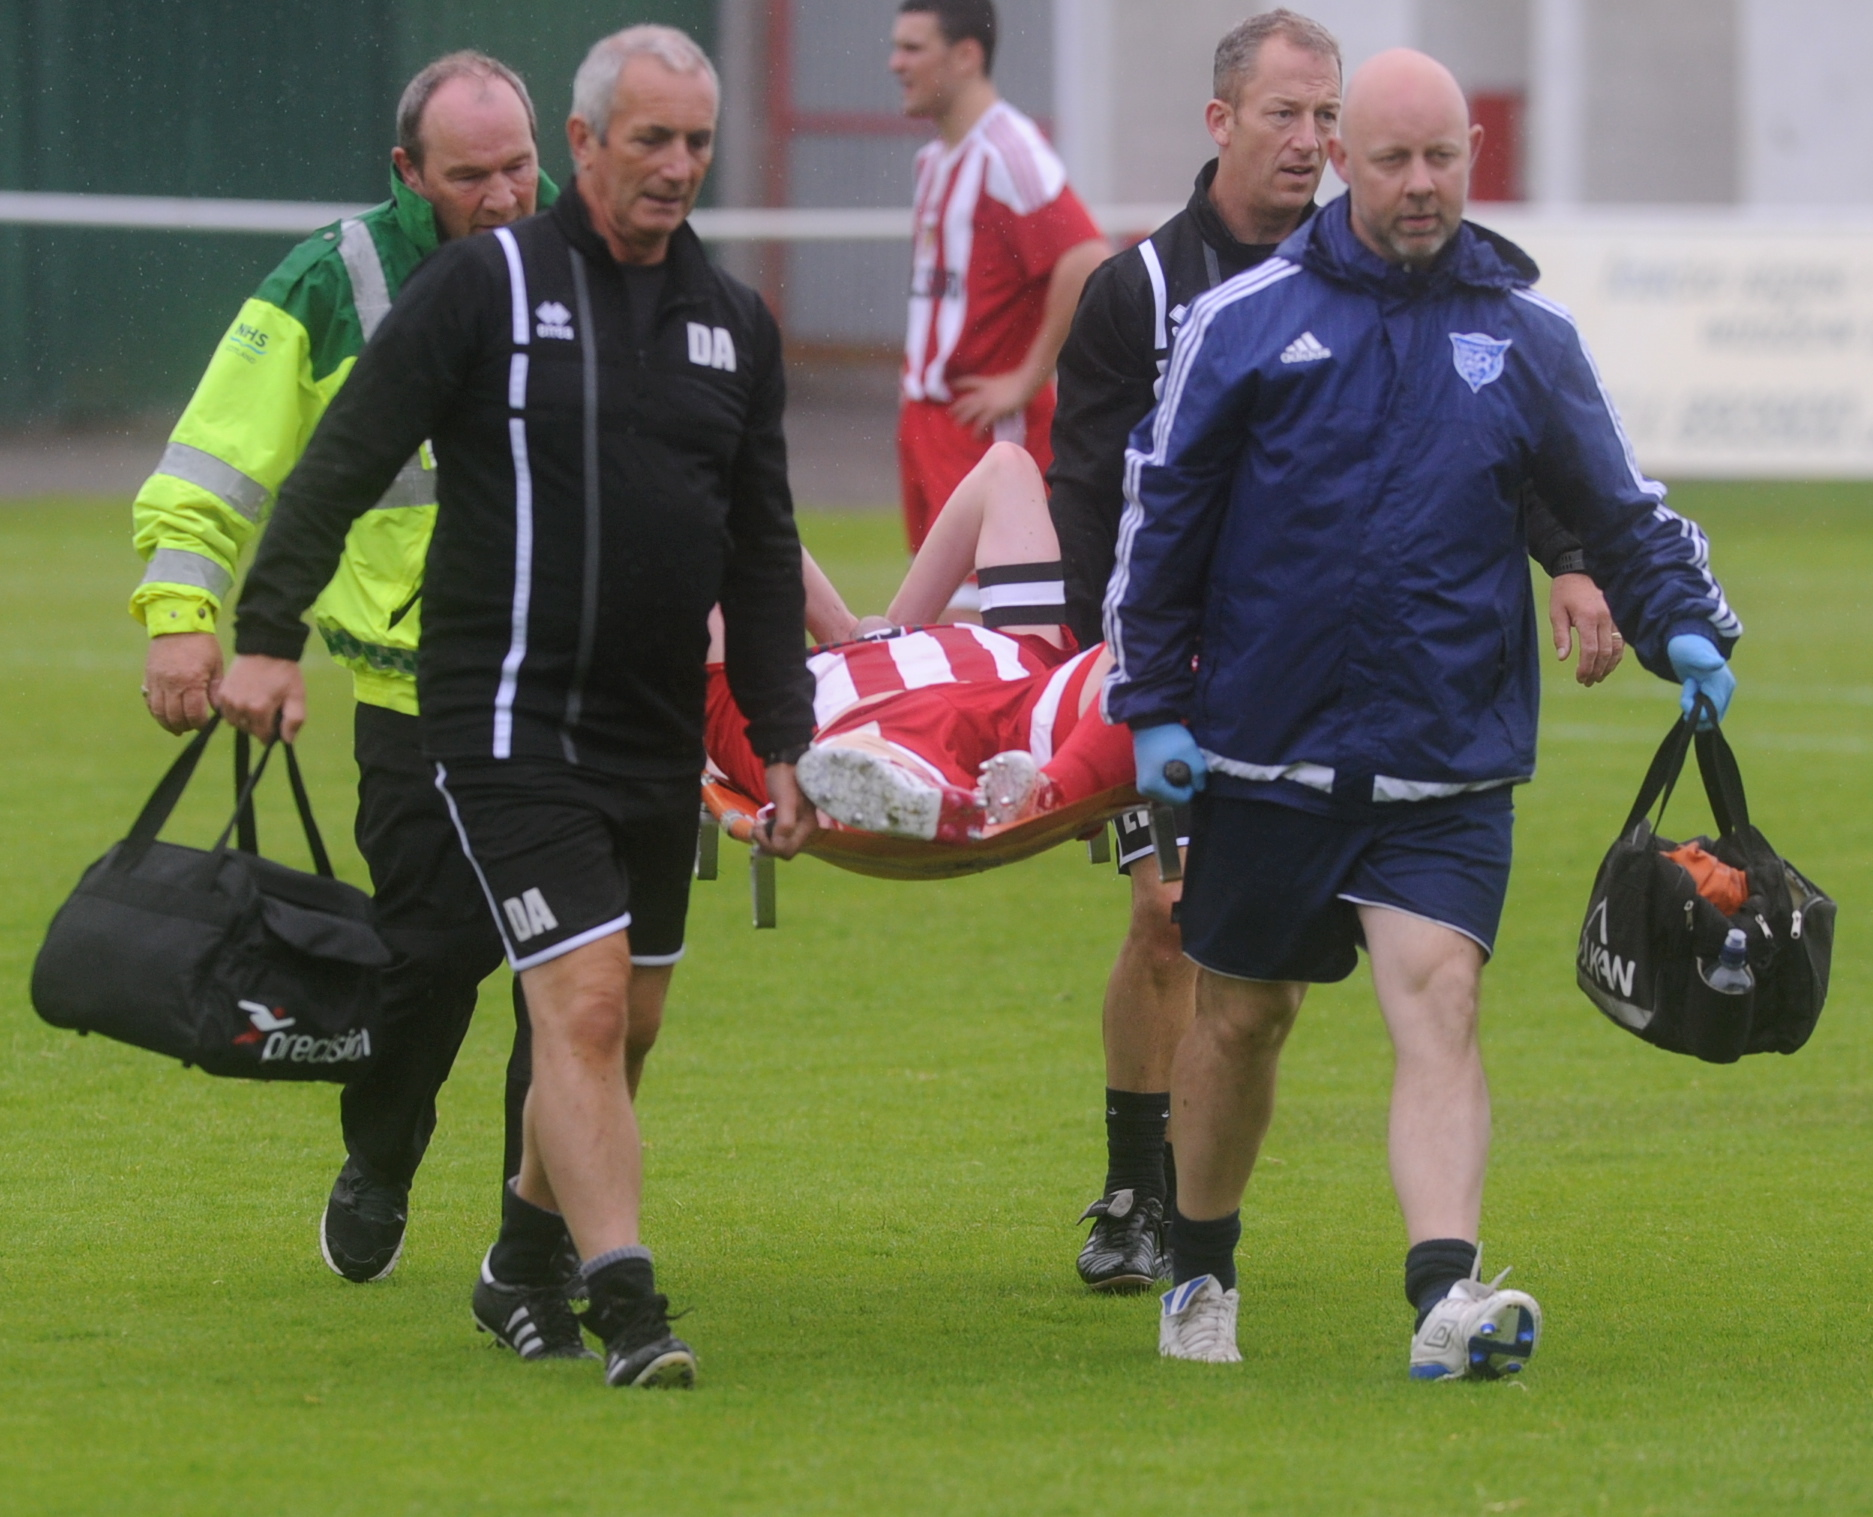 Formartine captain Craig McKeown is taken off the pitch with a suspected serious knee injury.